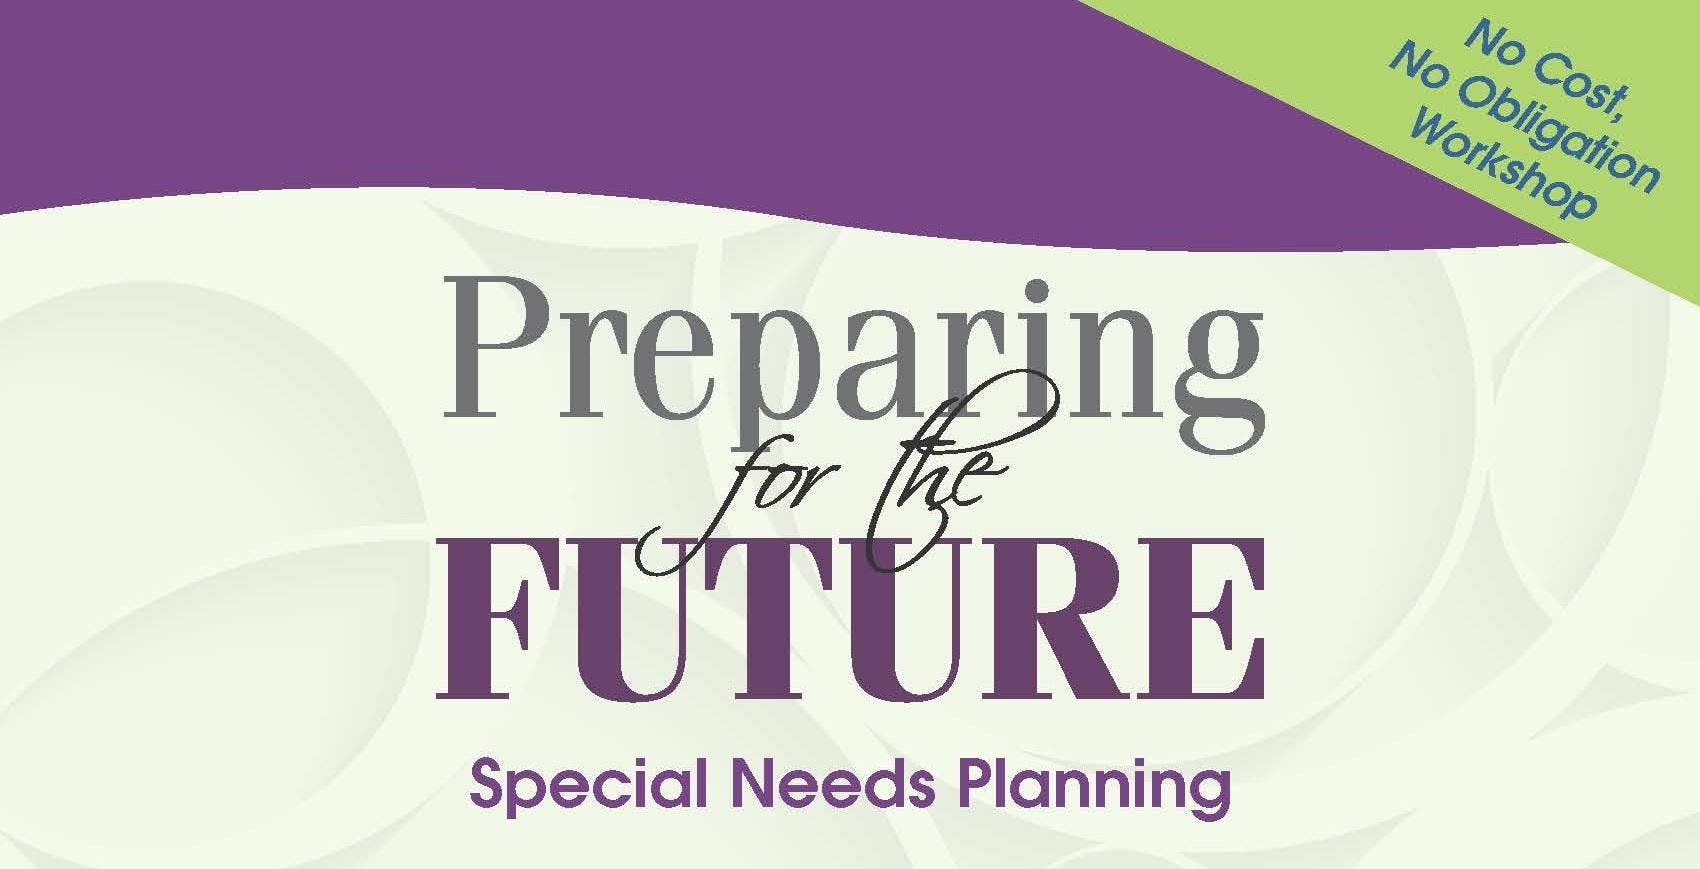 Special Needs Planning: Housing Options